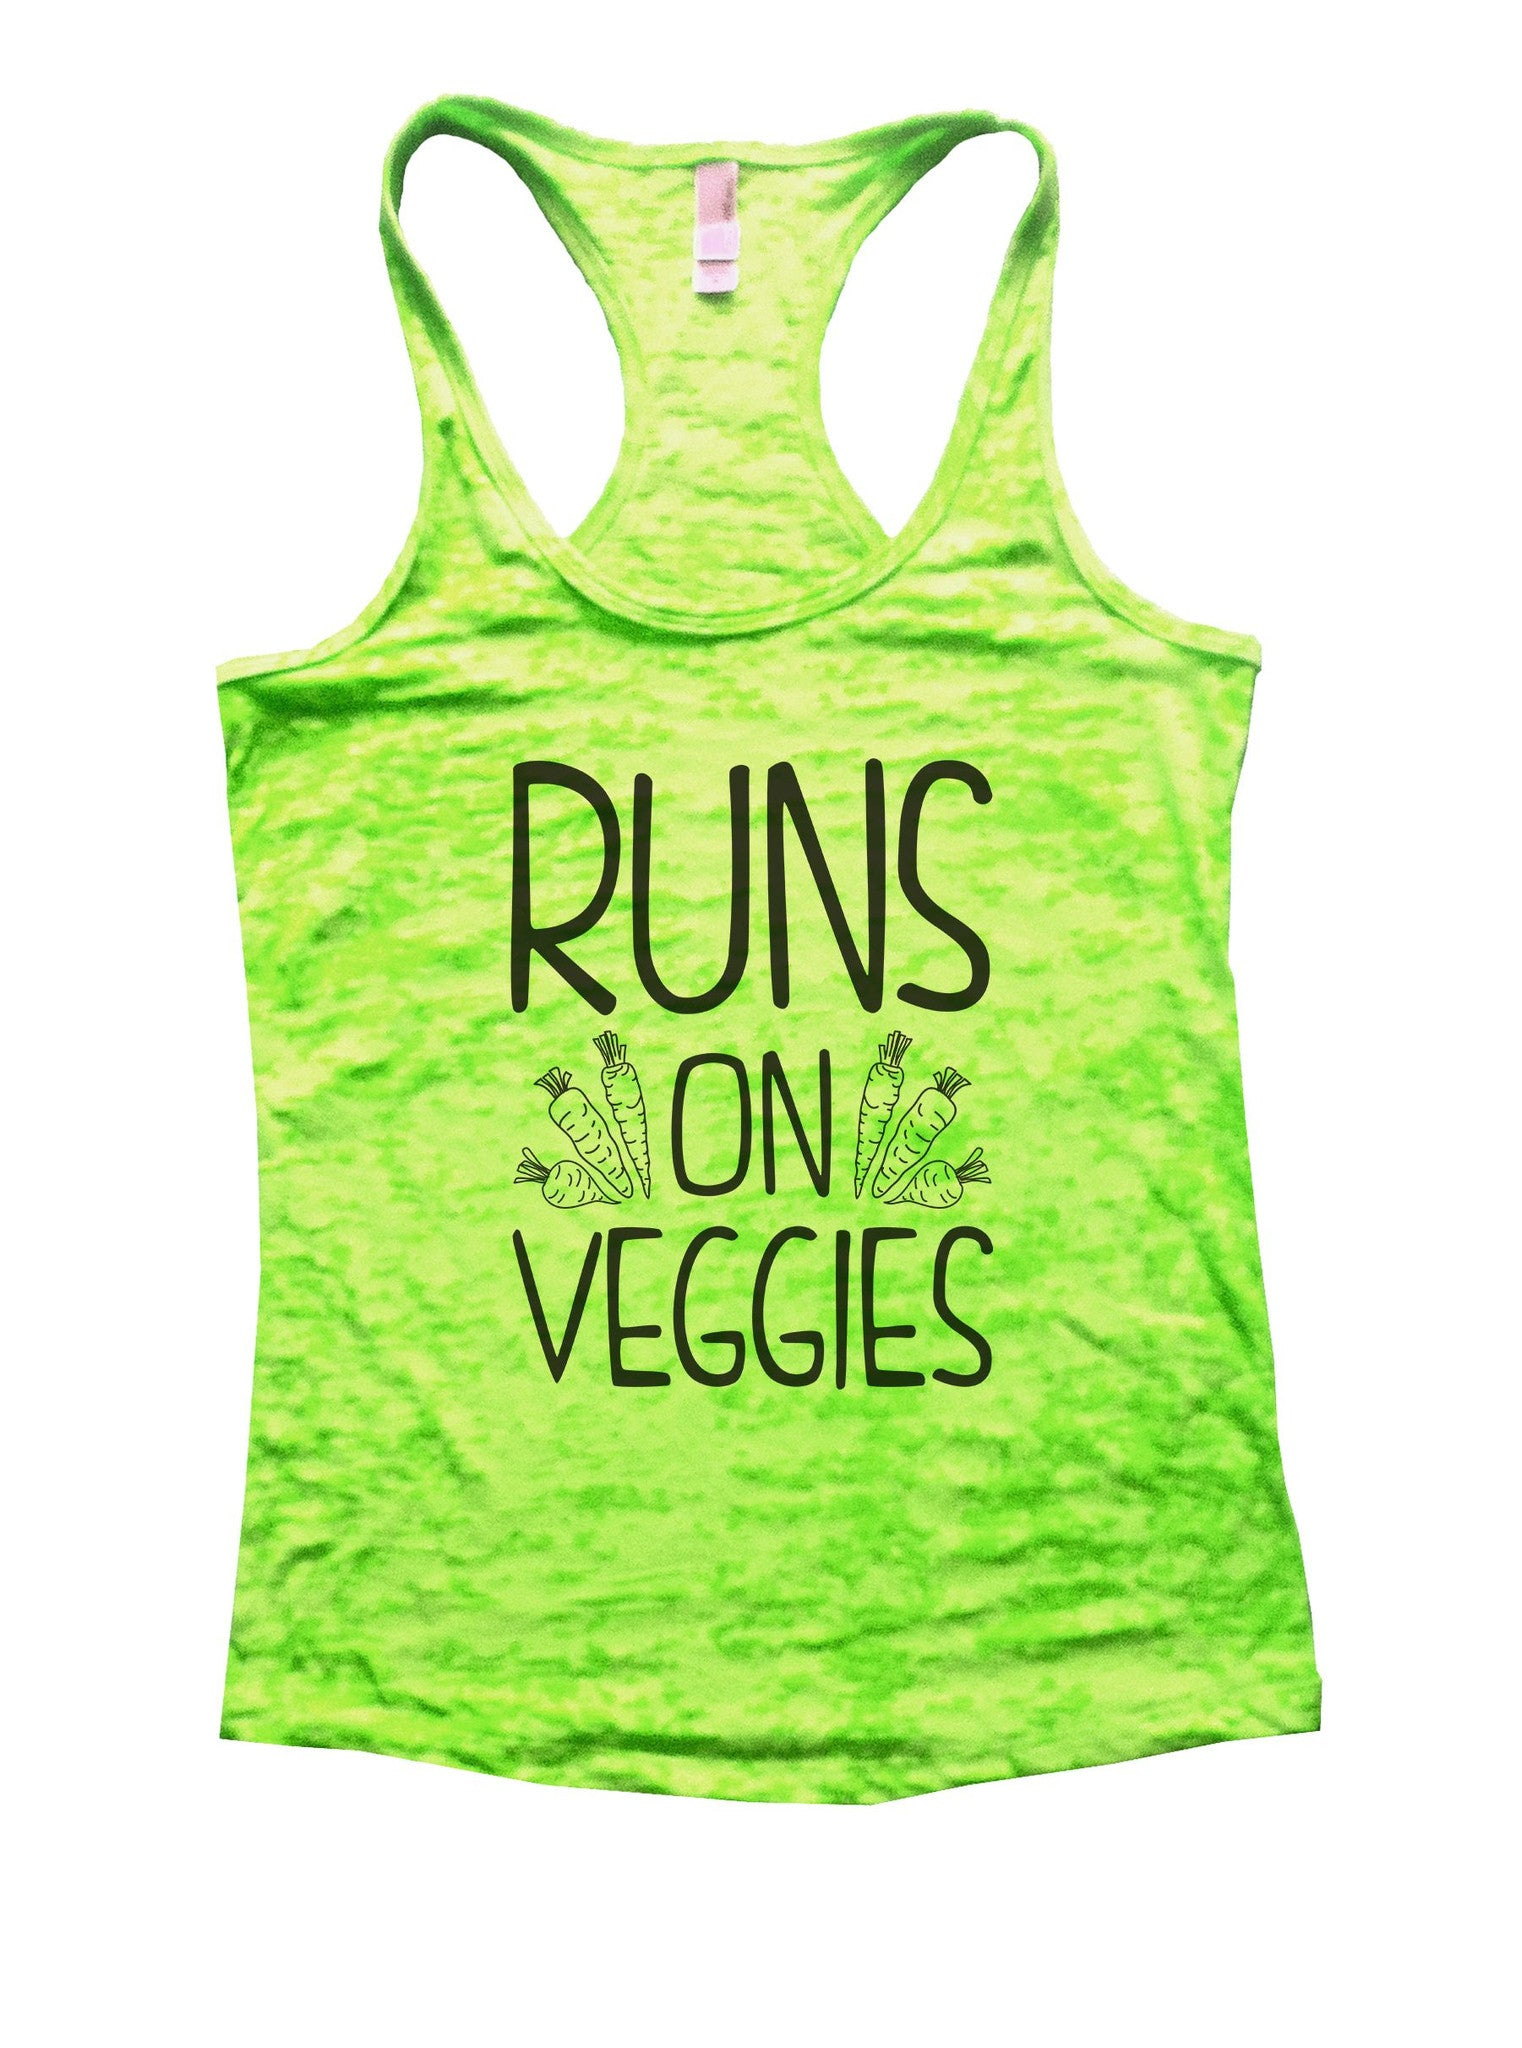 Runs On Veggies Burnout Tank Top By BurnoutTankTops.com - 1074 - Funny Shirts Tank Tops Burnouts and Triblends  - 1